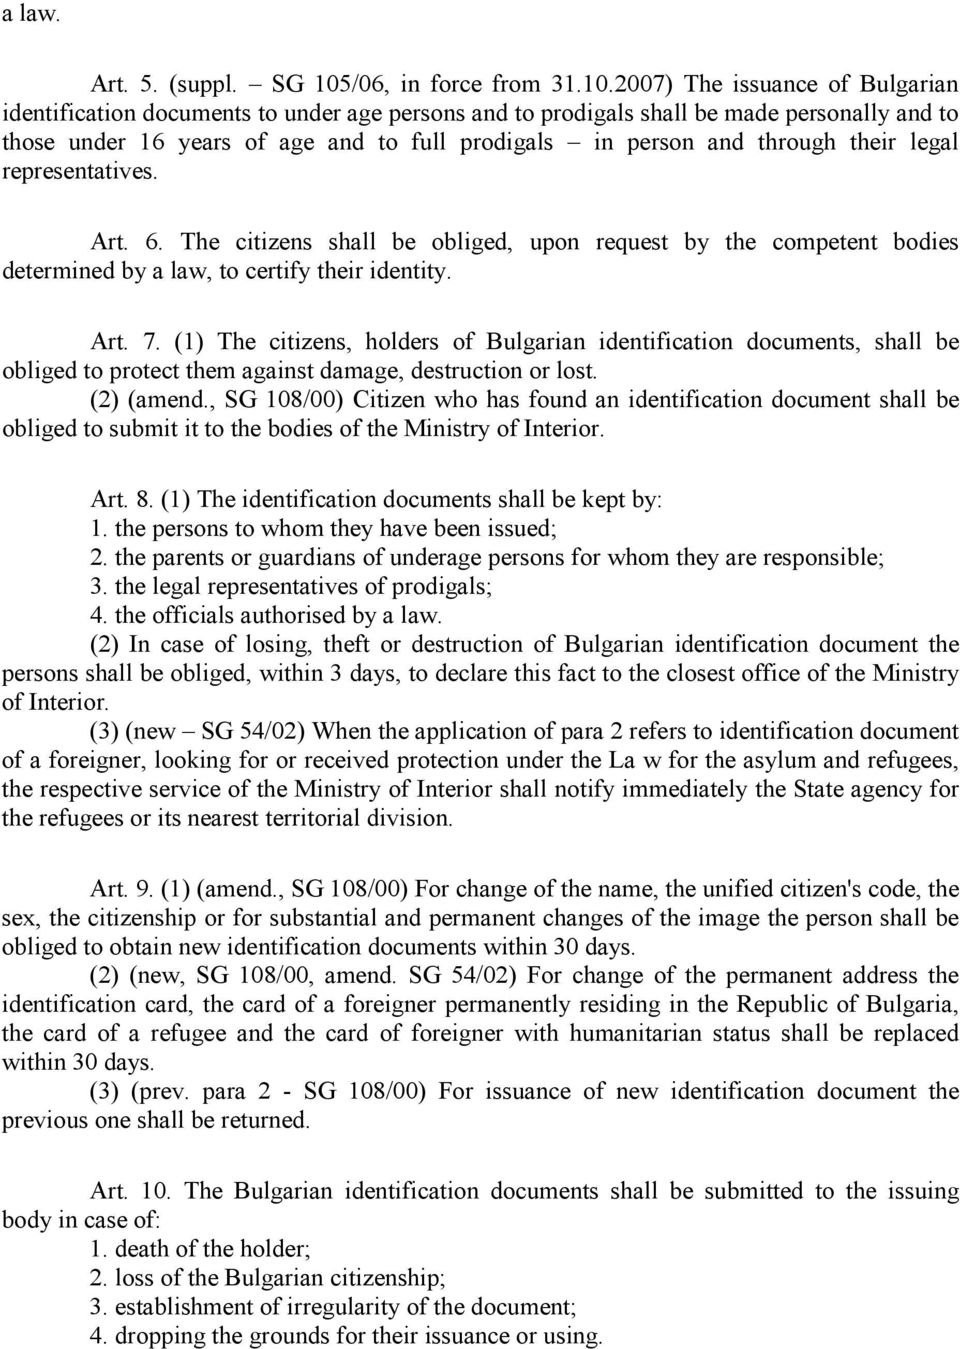 2007) The issuance of Bulgarian identification documents to under age persons and to prodigals shall be made personally and to those under 16 years of age and to full prodigals in person and through